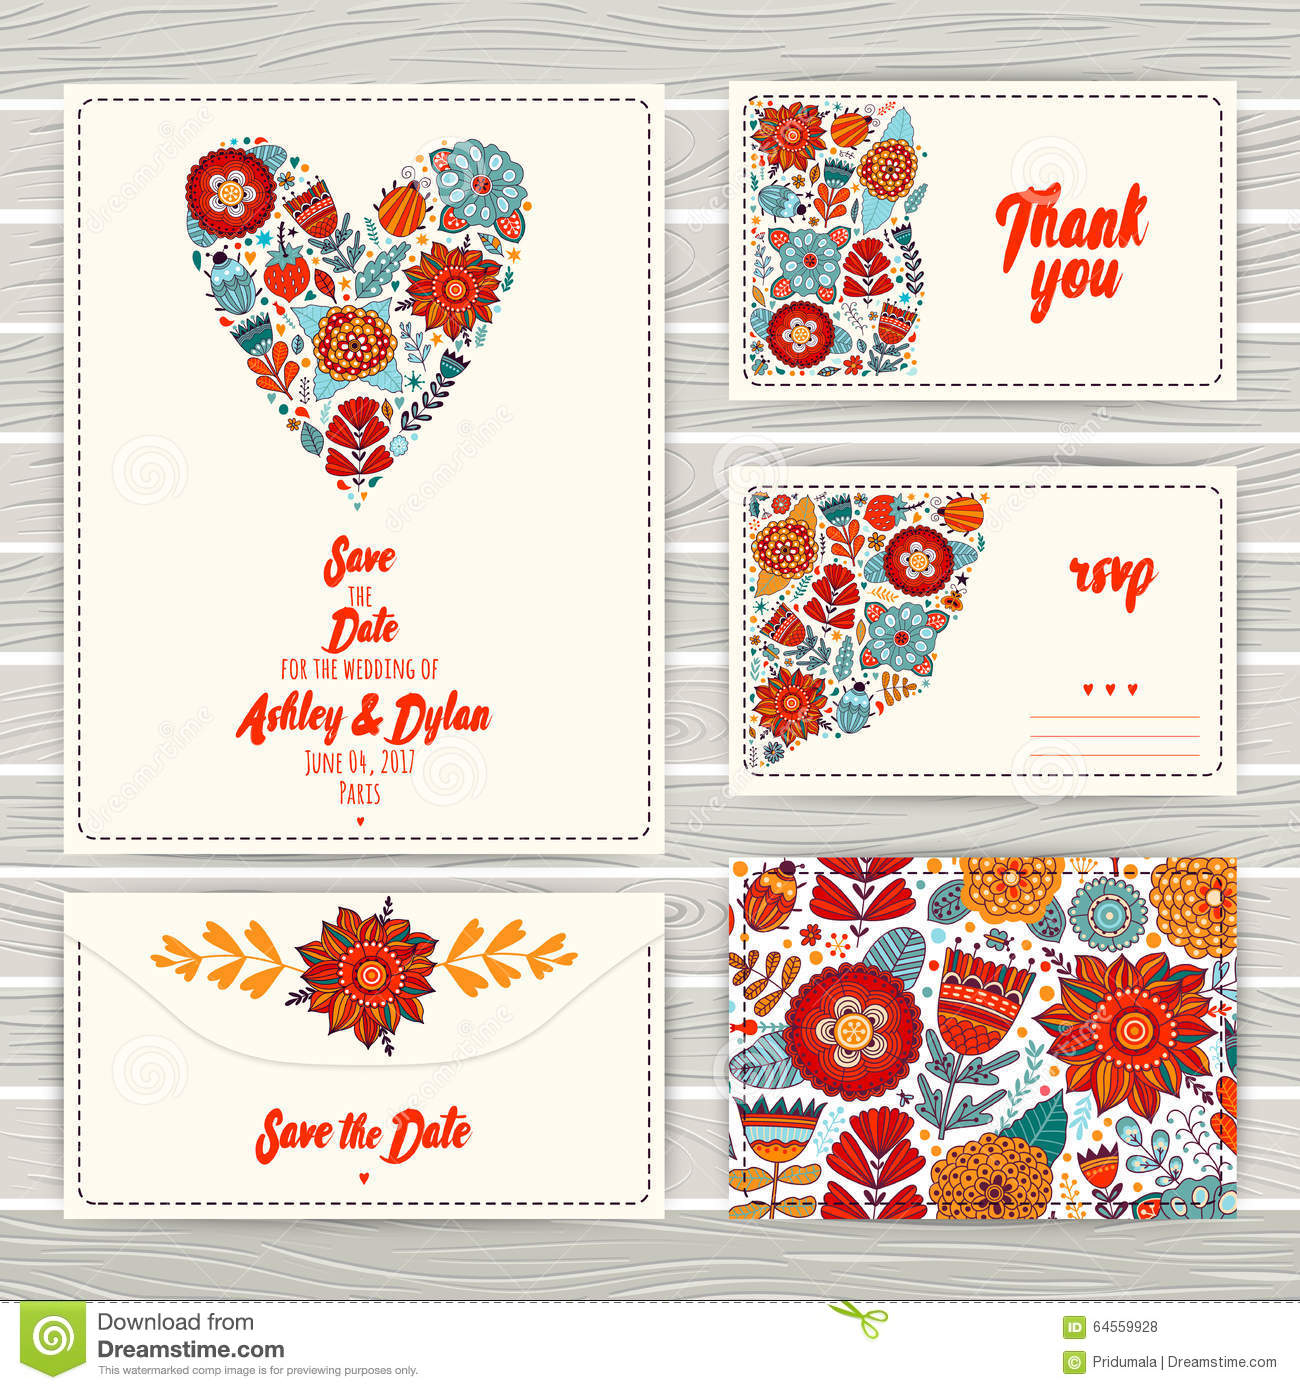 thank you card template wedding famousmore com